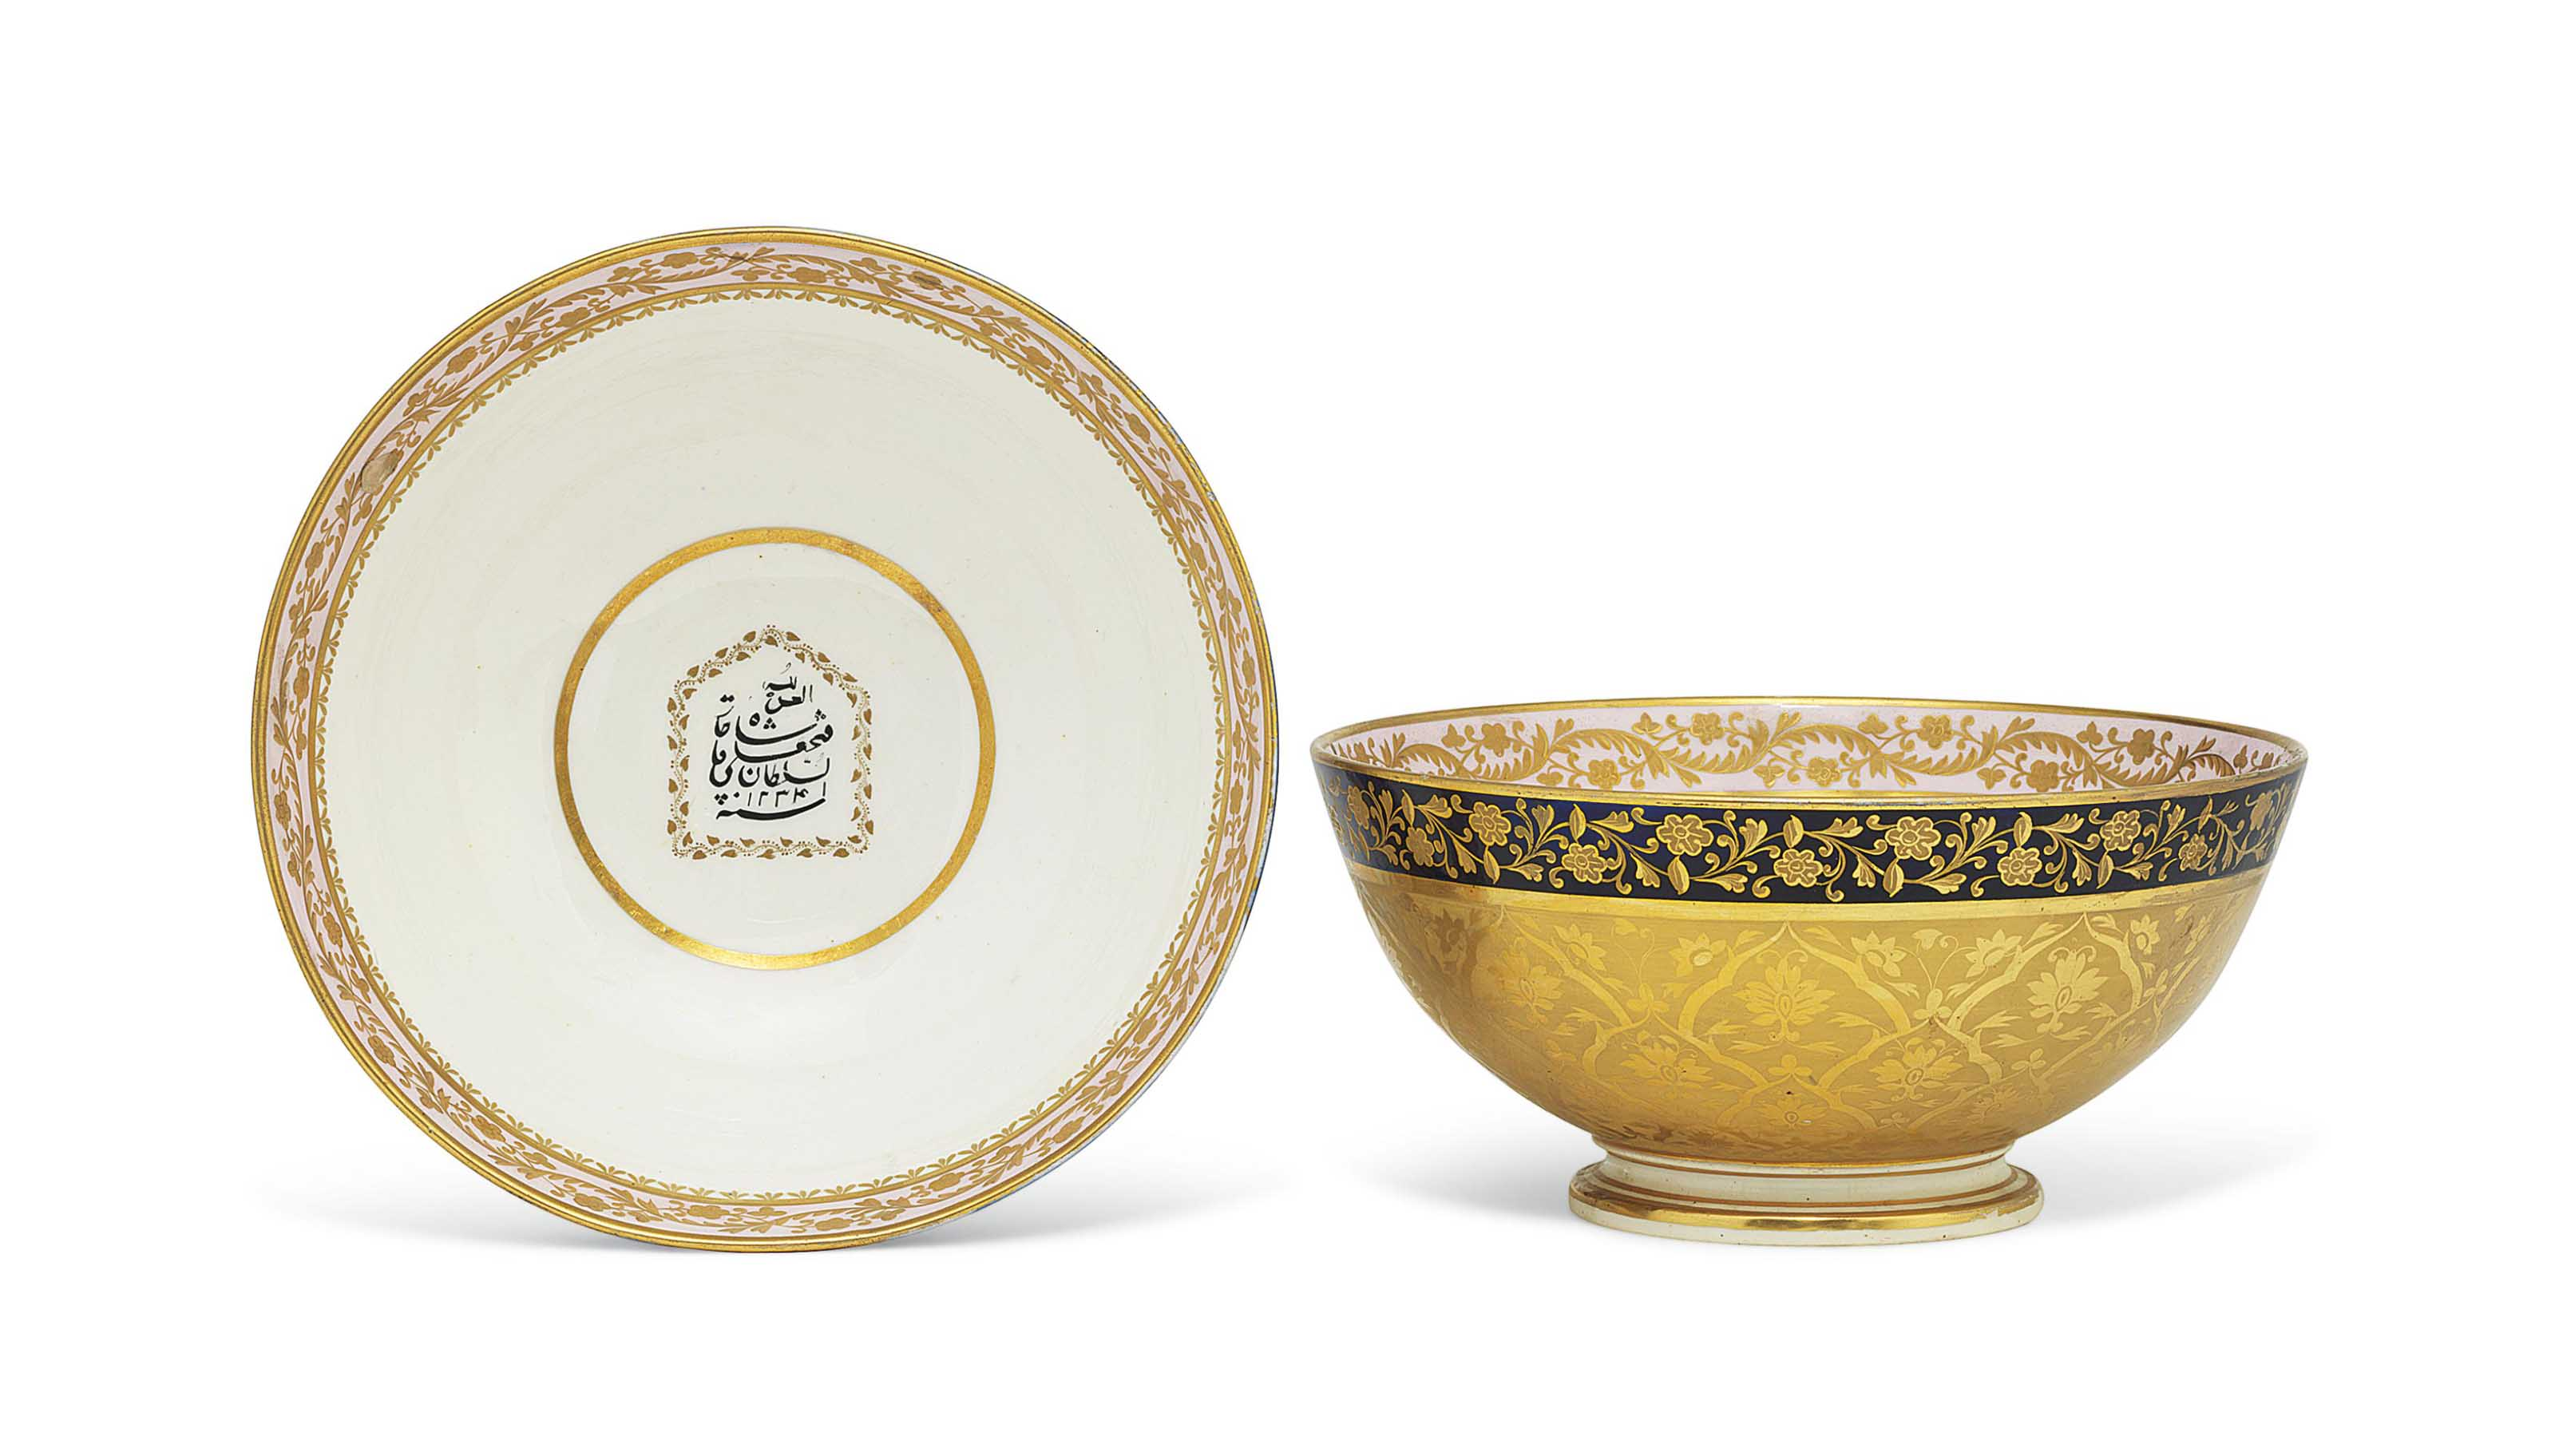 TWO DERBY BOWLS FROM THE SERVI